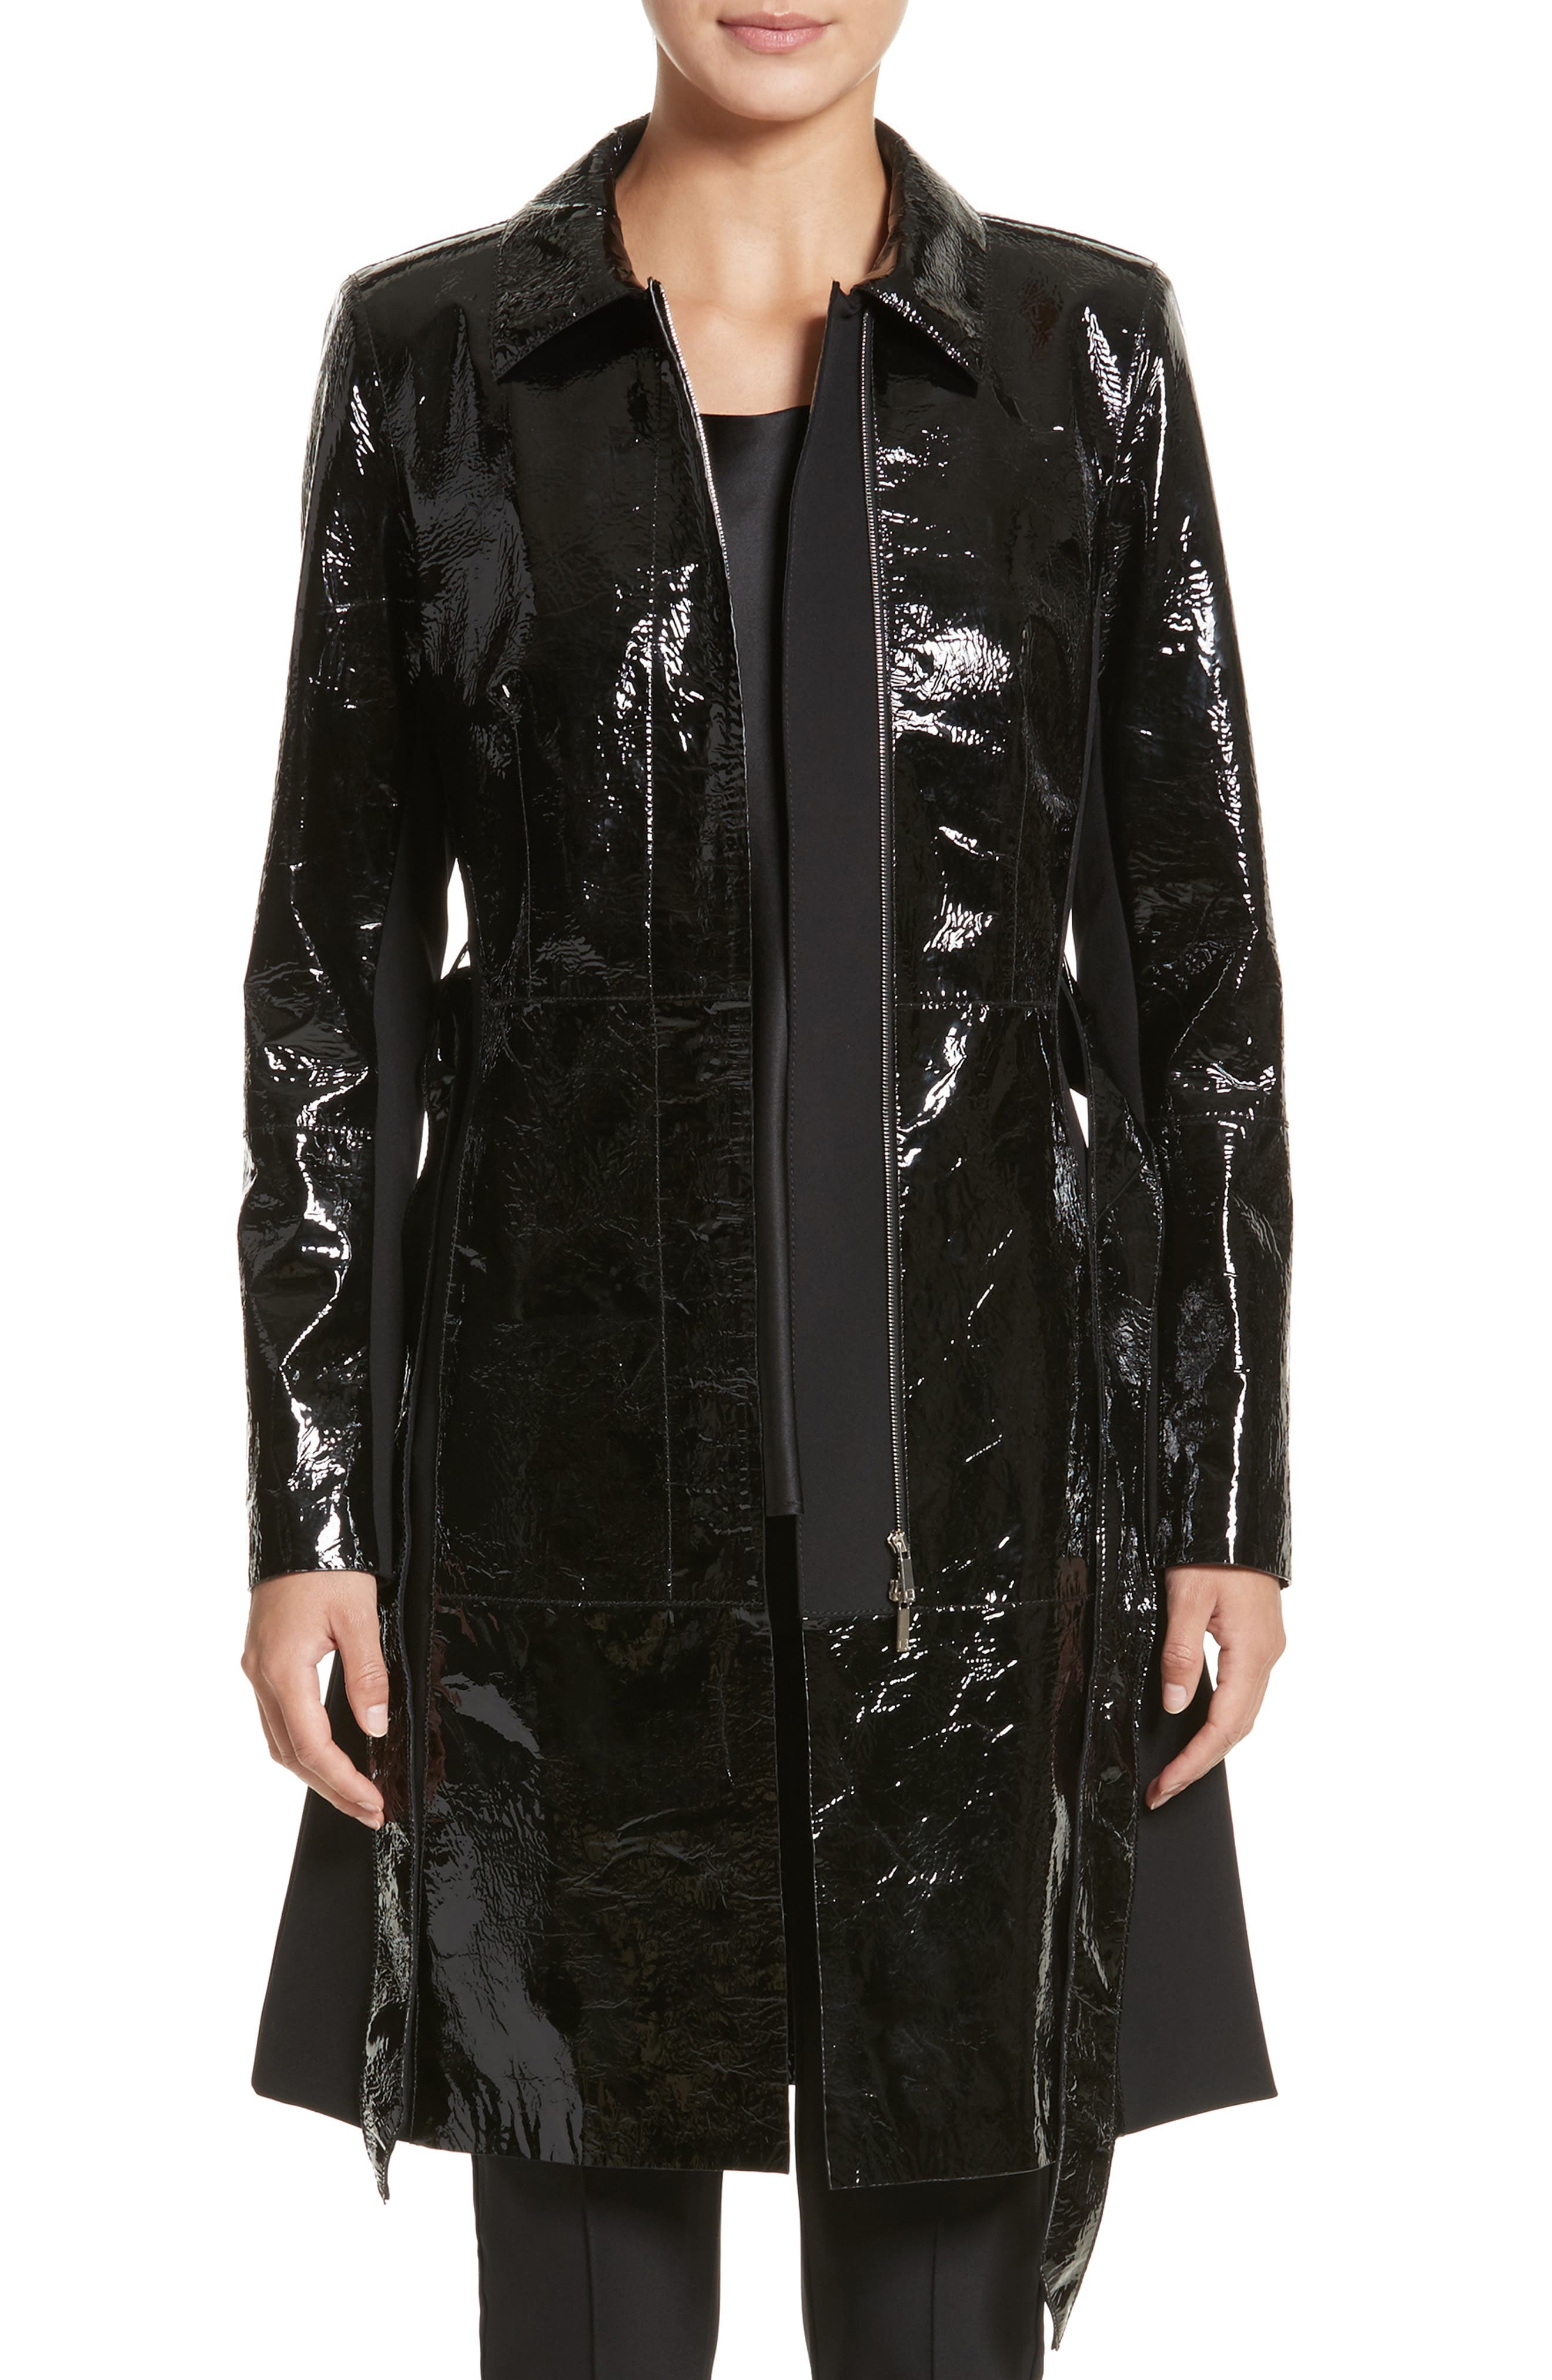 Alternate Image 1 Selected - Lafayette 148 New York Paola Tech Combo Patent Leather Trench Coat